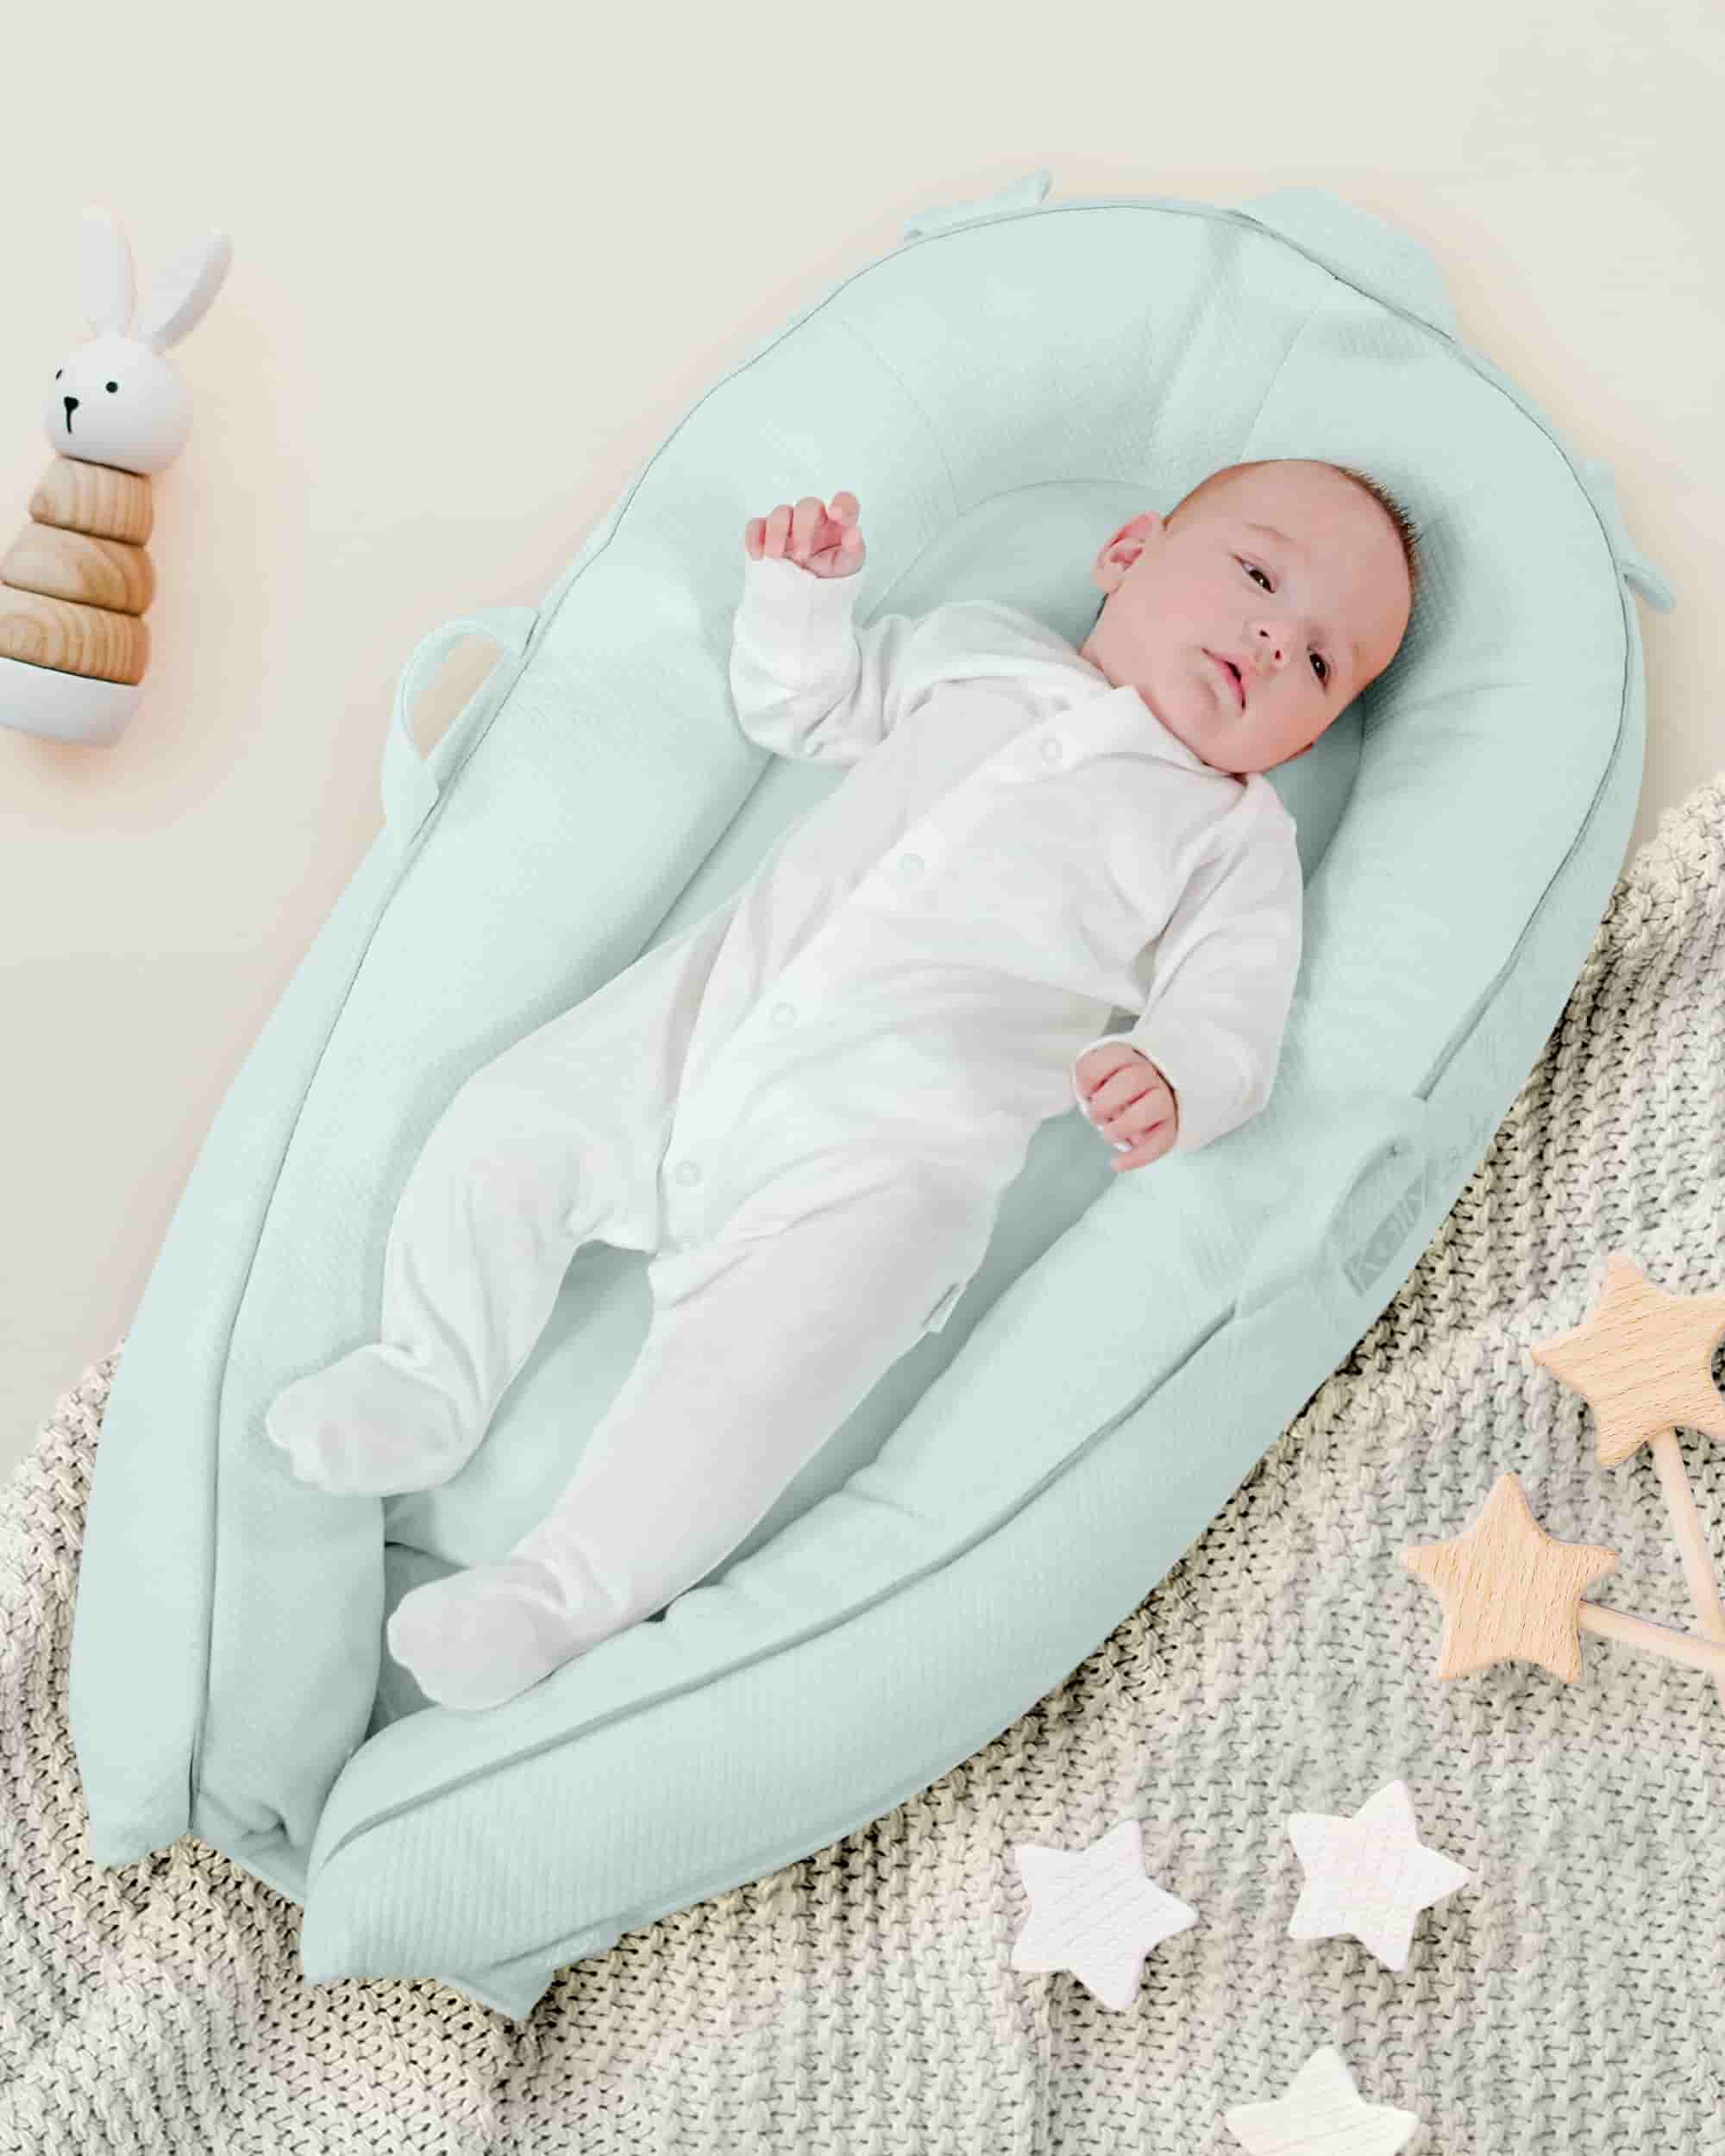 Adorable baby lying down in the smooth blue pod.